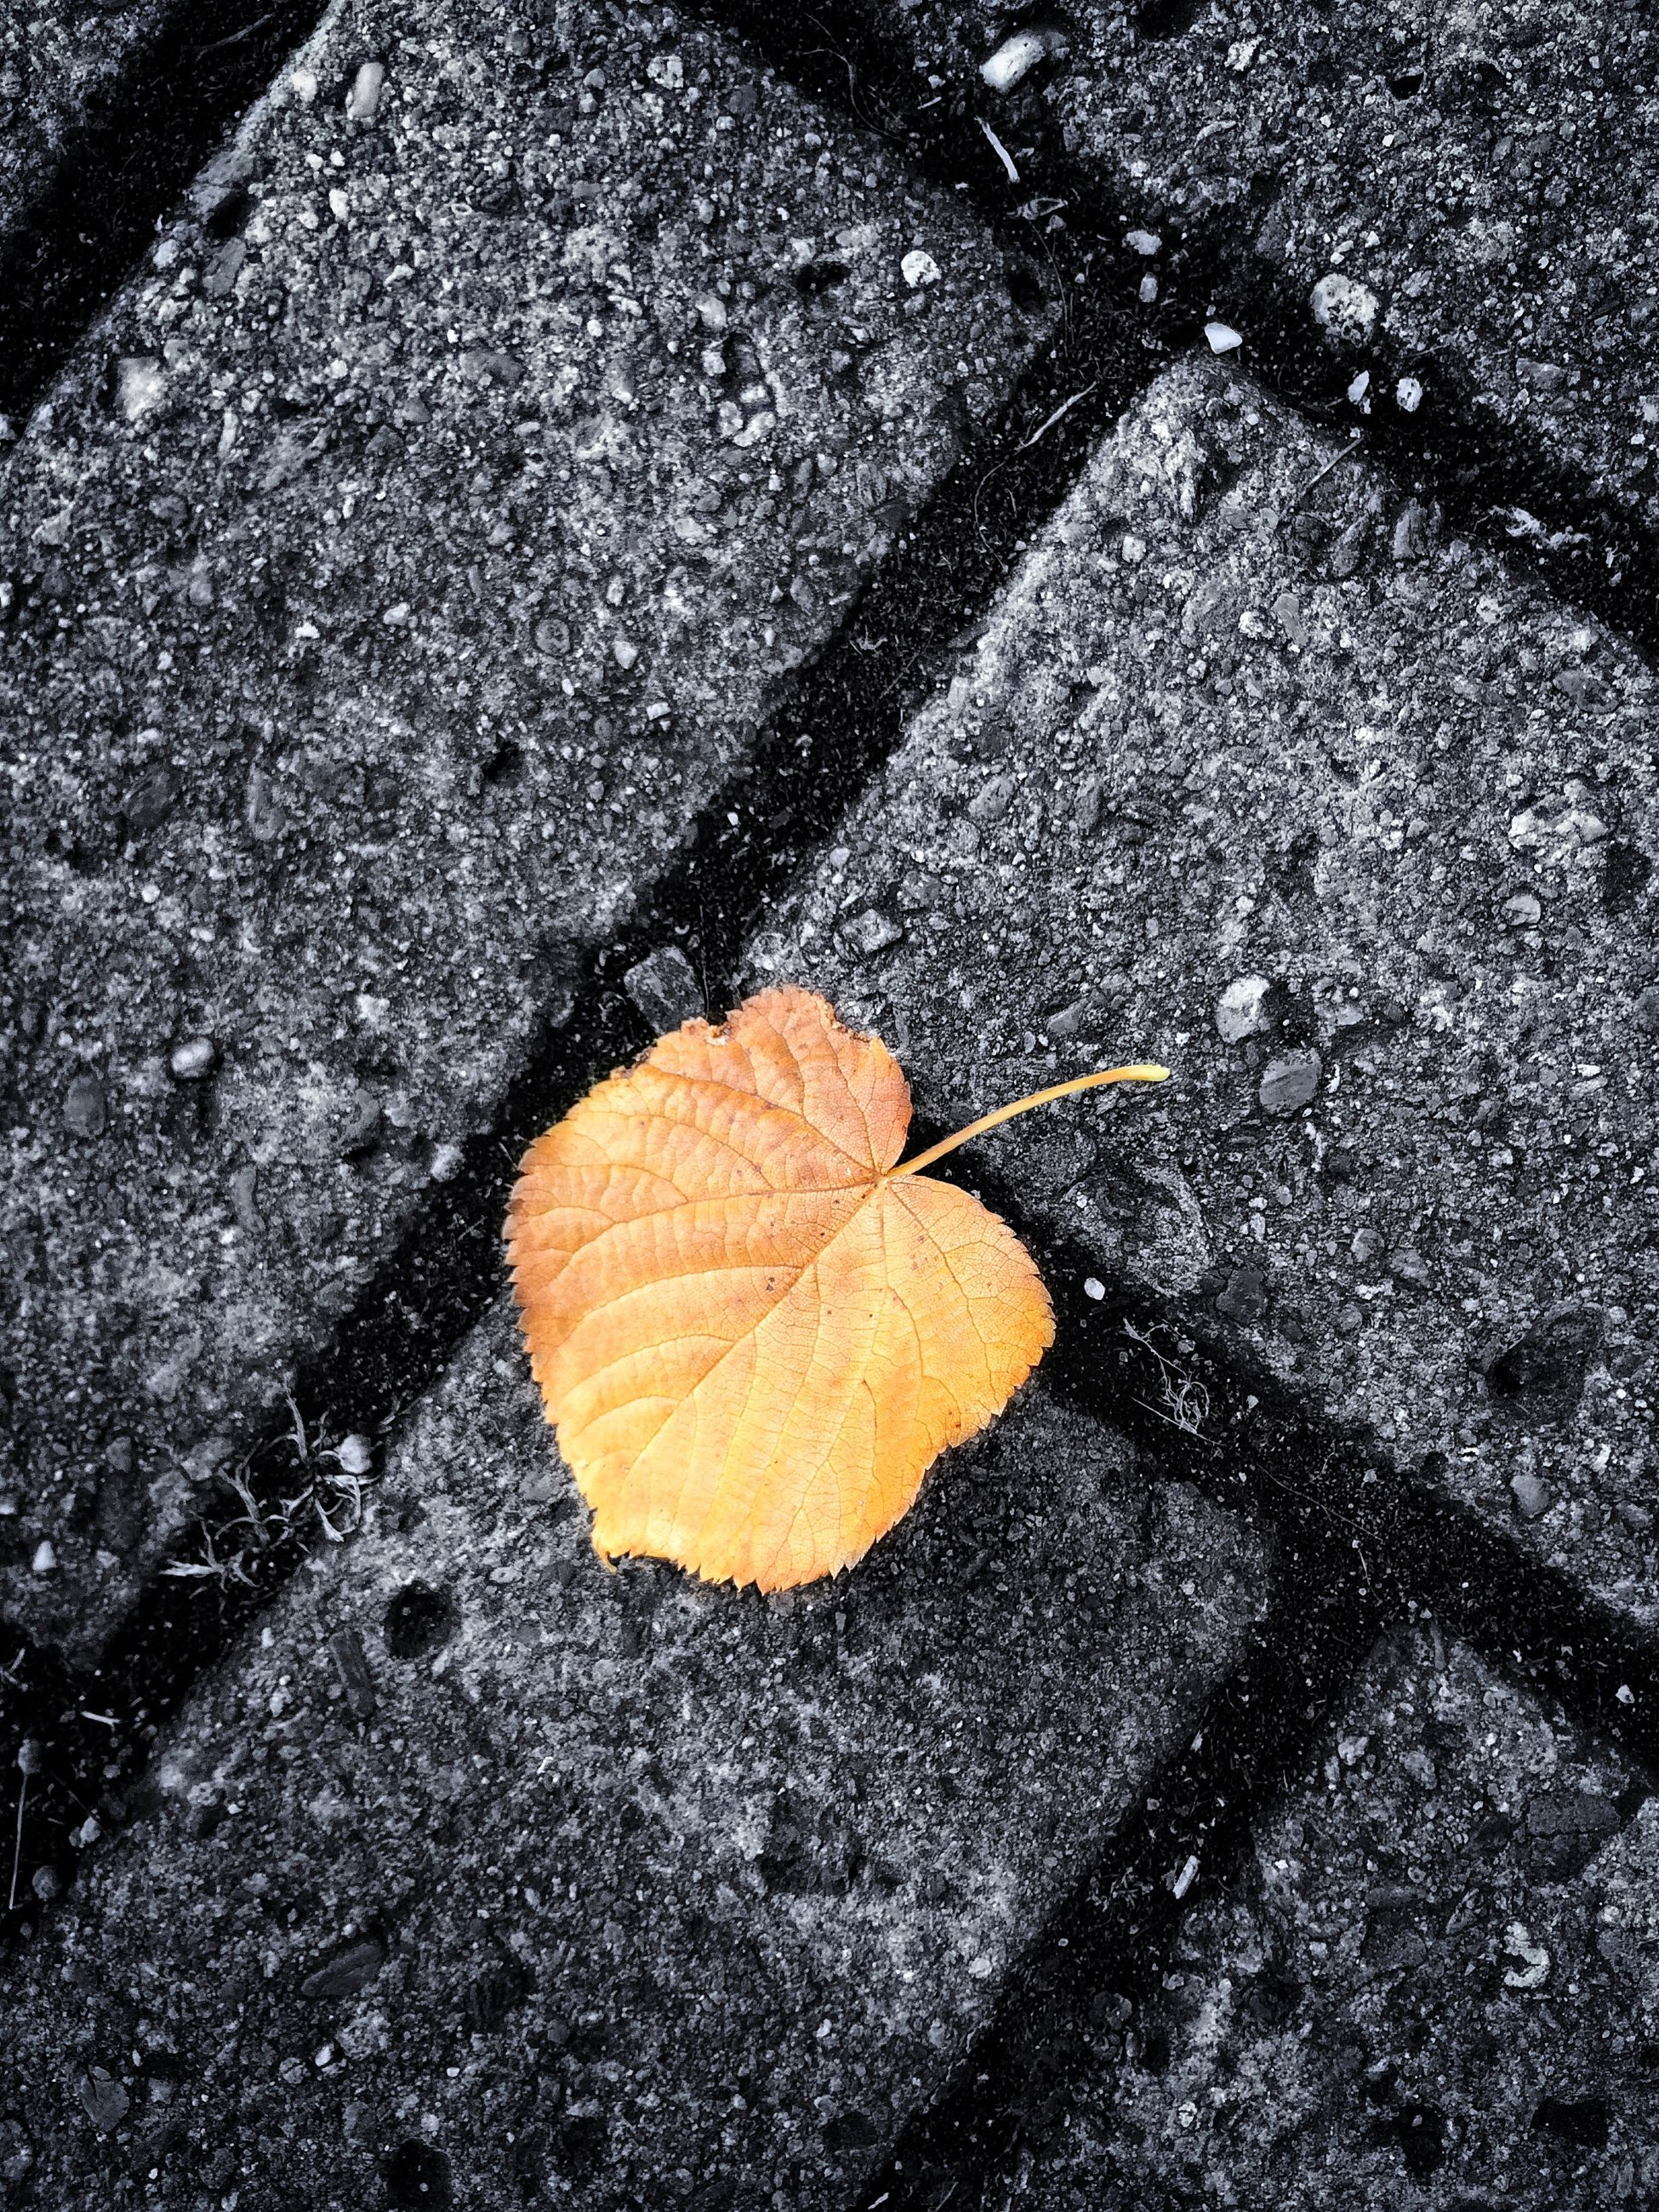 asphalt, high angle view, street, season, road, autumn, leaf, transportation, road marking, wet, change, fallen, textured, close-up, outdoors, day, sidewalk, no people, dry, puddle